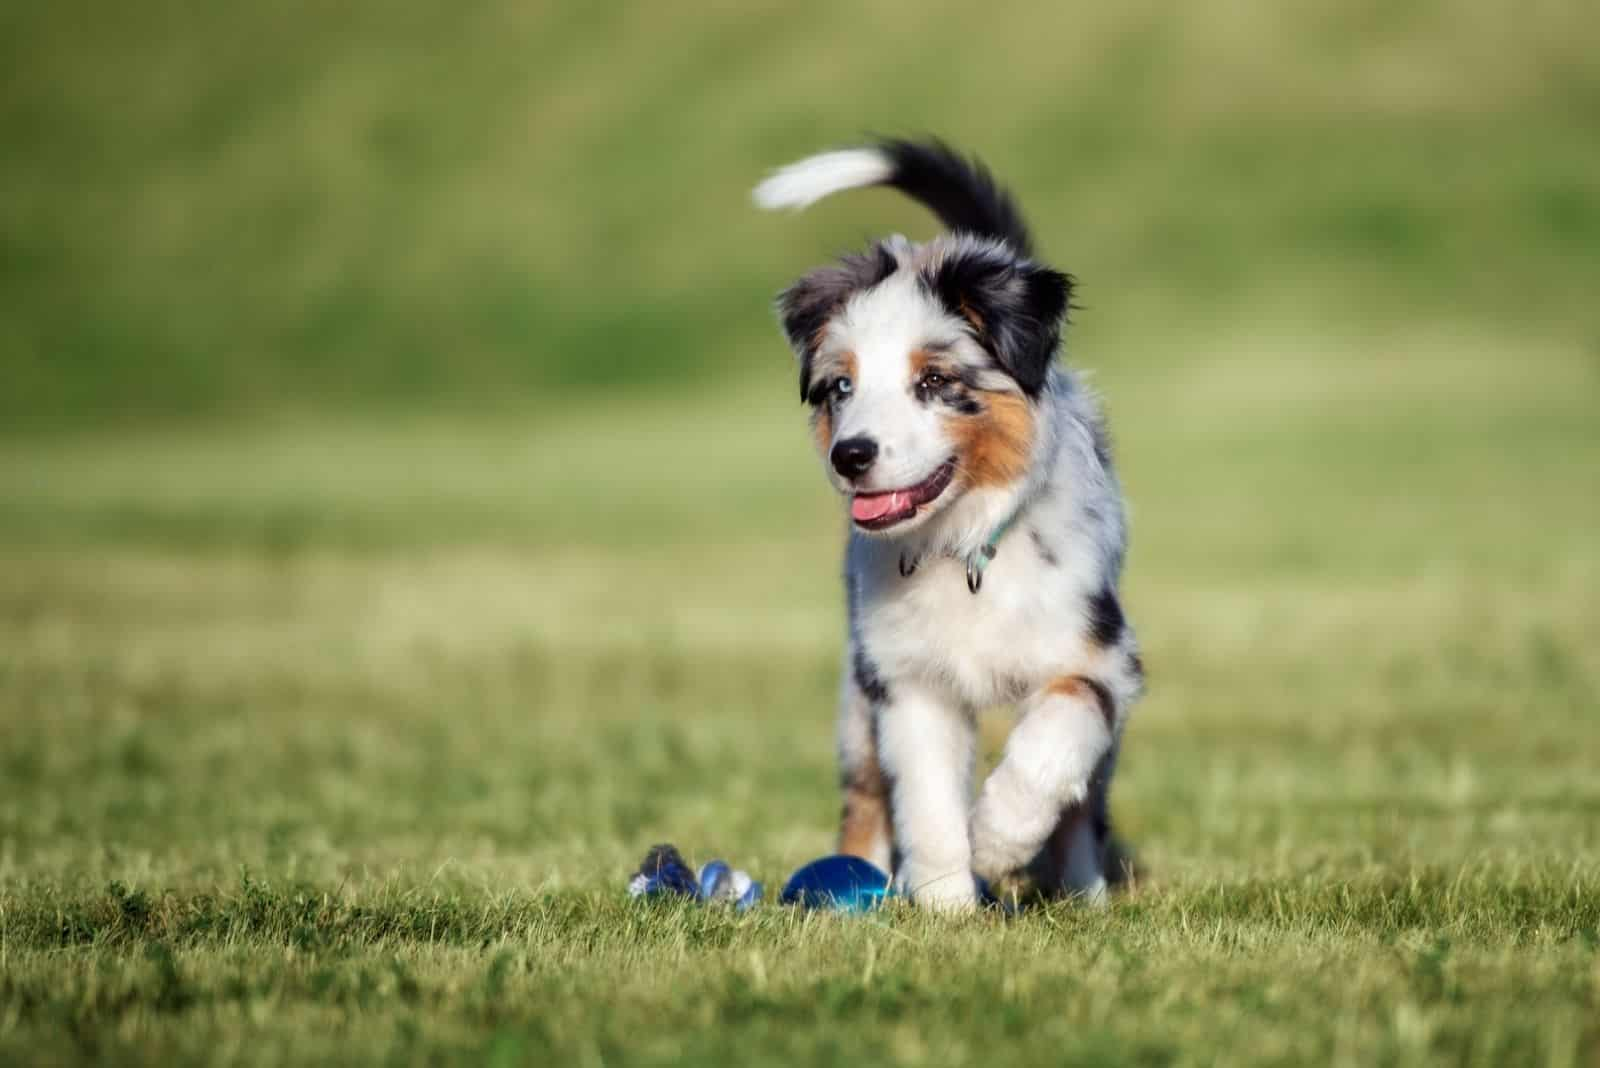 aussie shepherd toy puppy playing outdoors